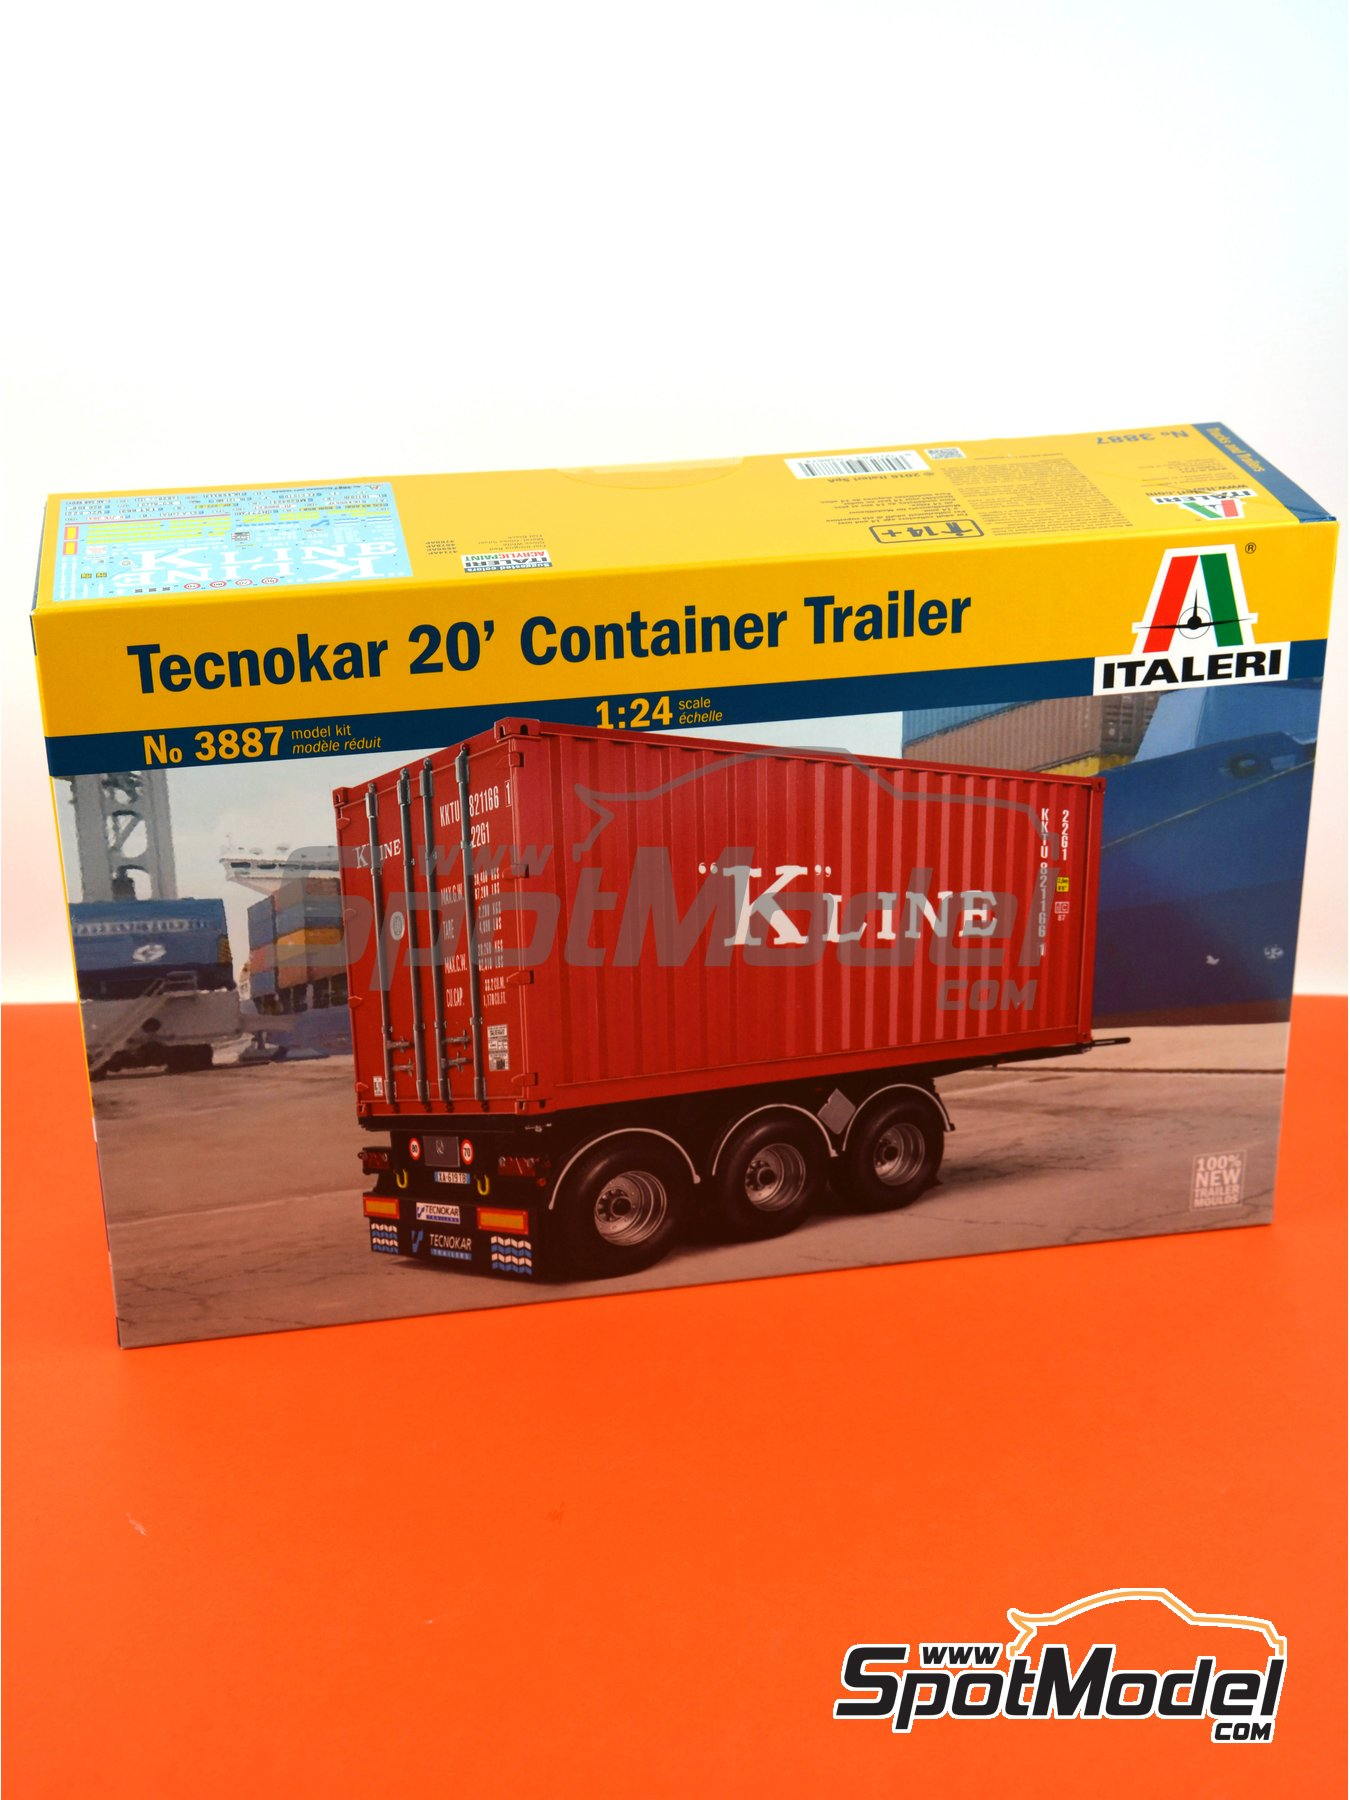 Tecnokar 20' container trailer | Trailer kit in 1/24 scale manufactured by Italeri (ref. 3887) image